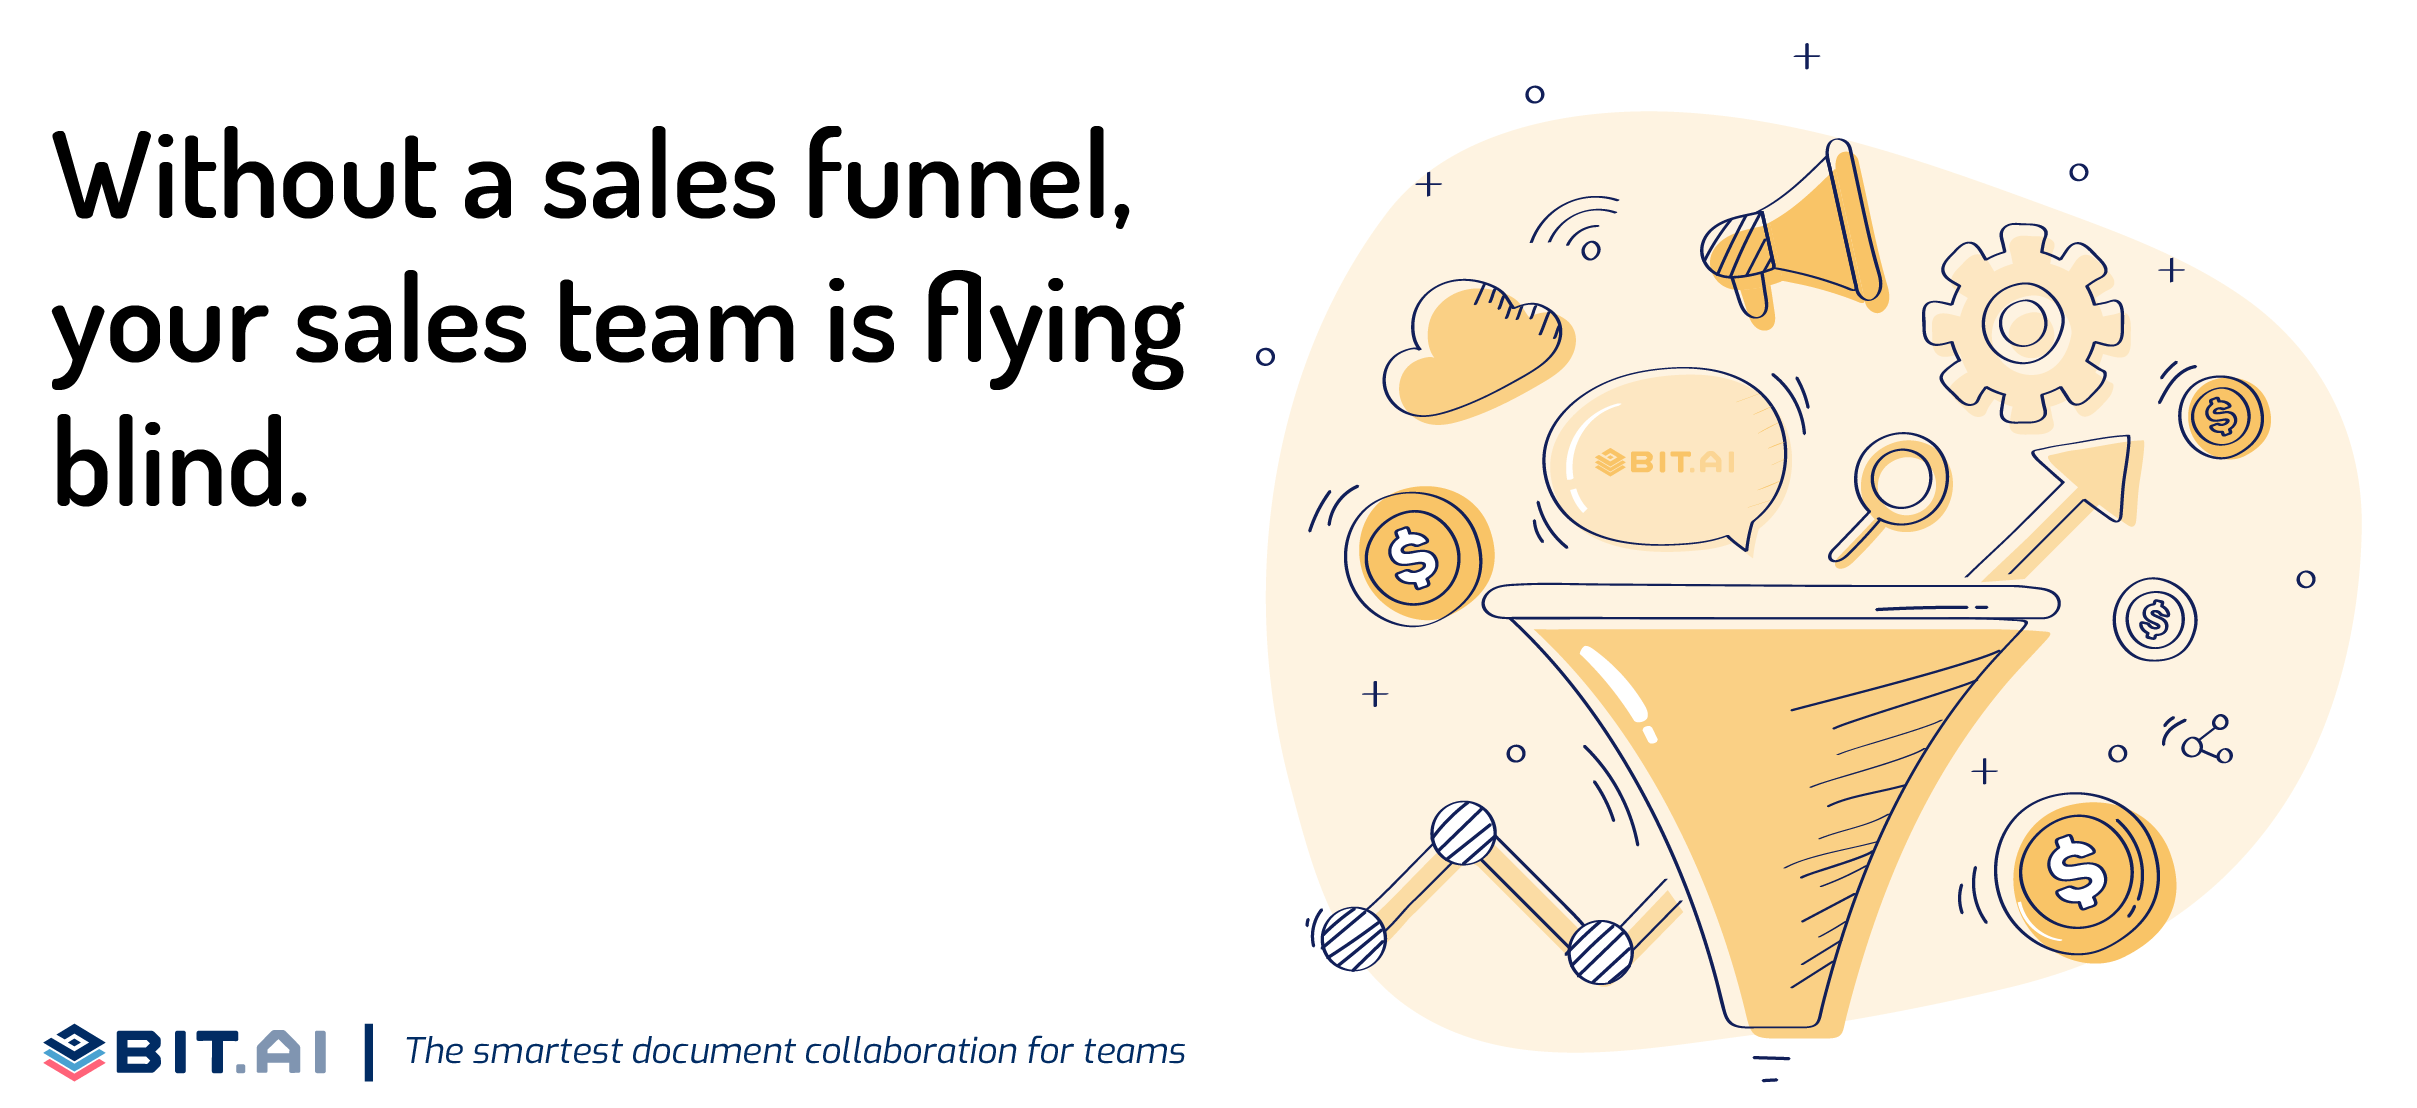 Illustration of a quote related to sales funnel and sales team